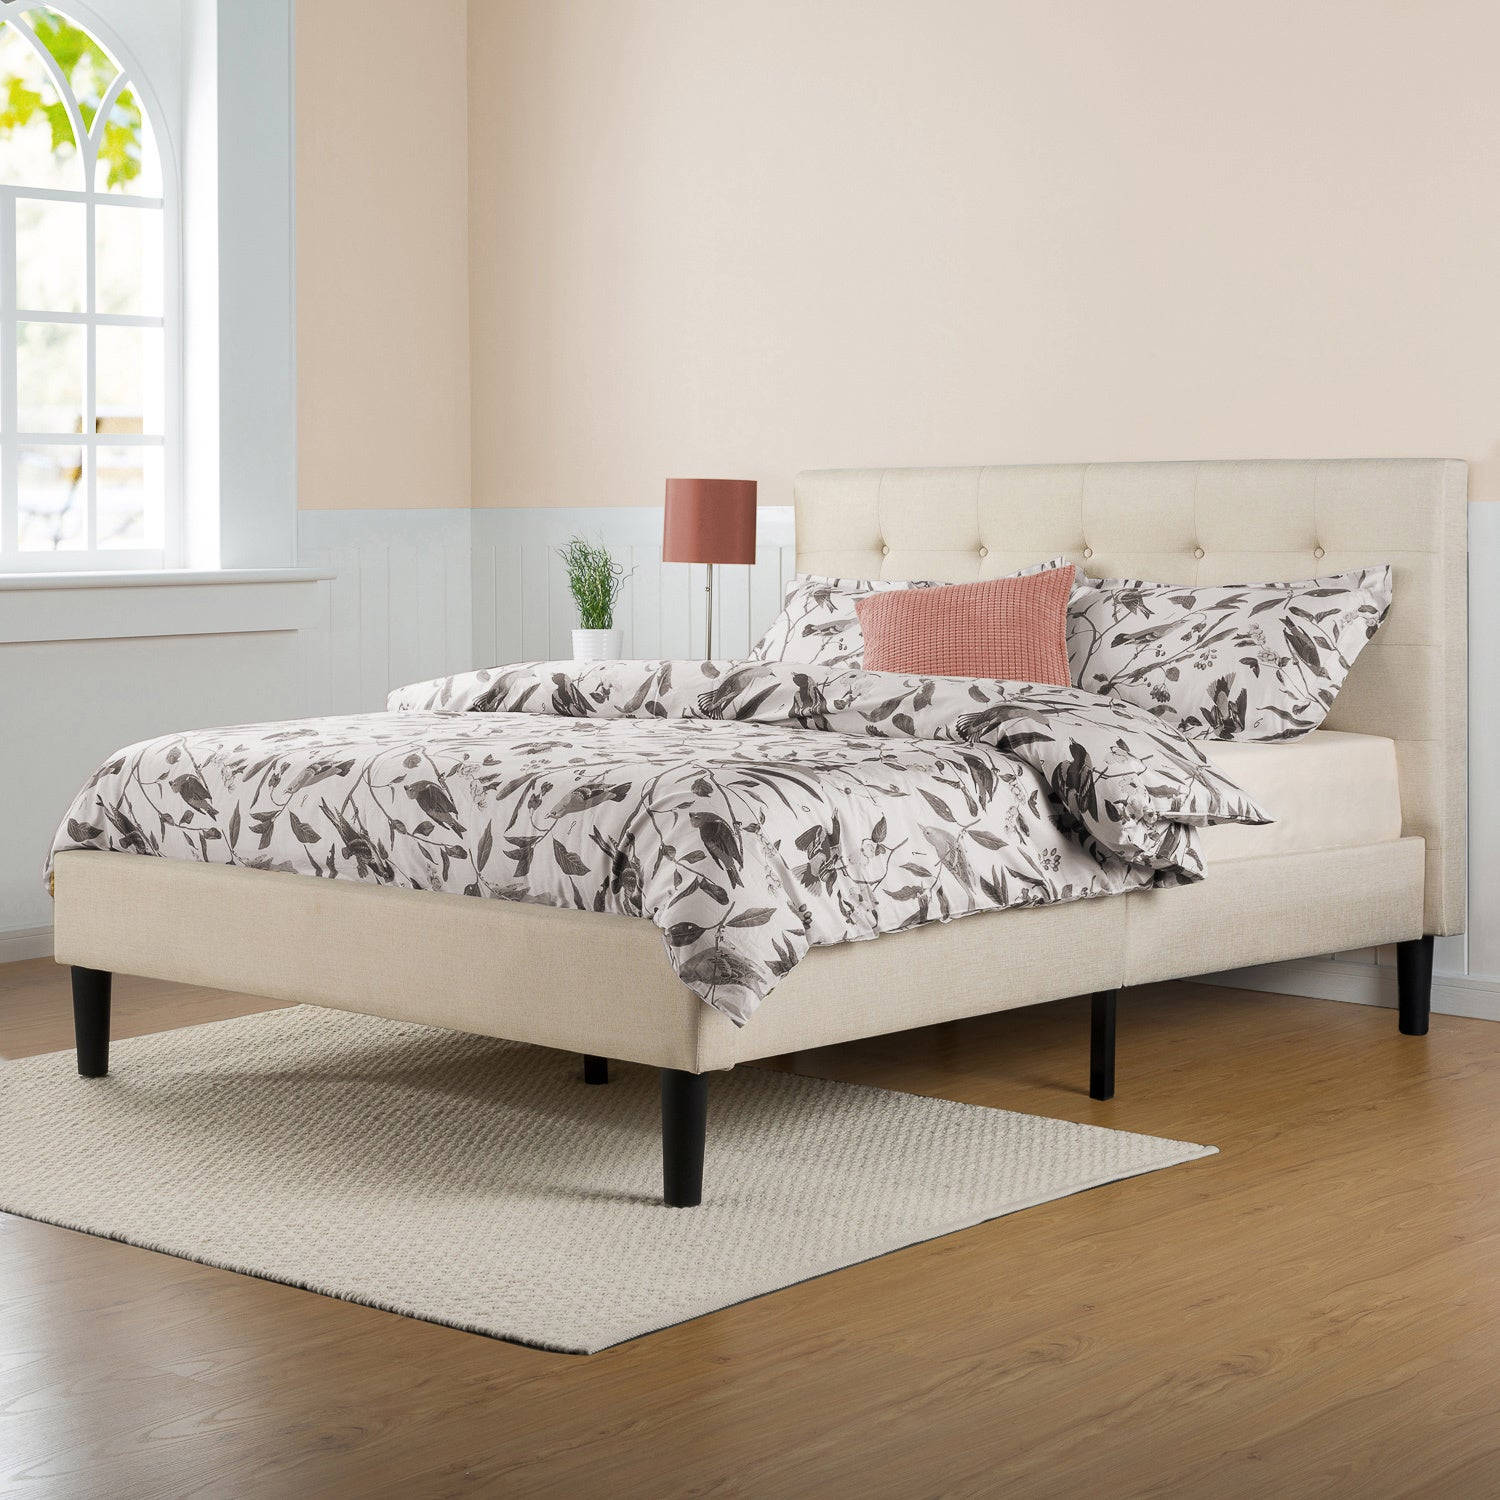 Priage Upholstered Button Queen Tufted Platform Bed with ...